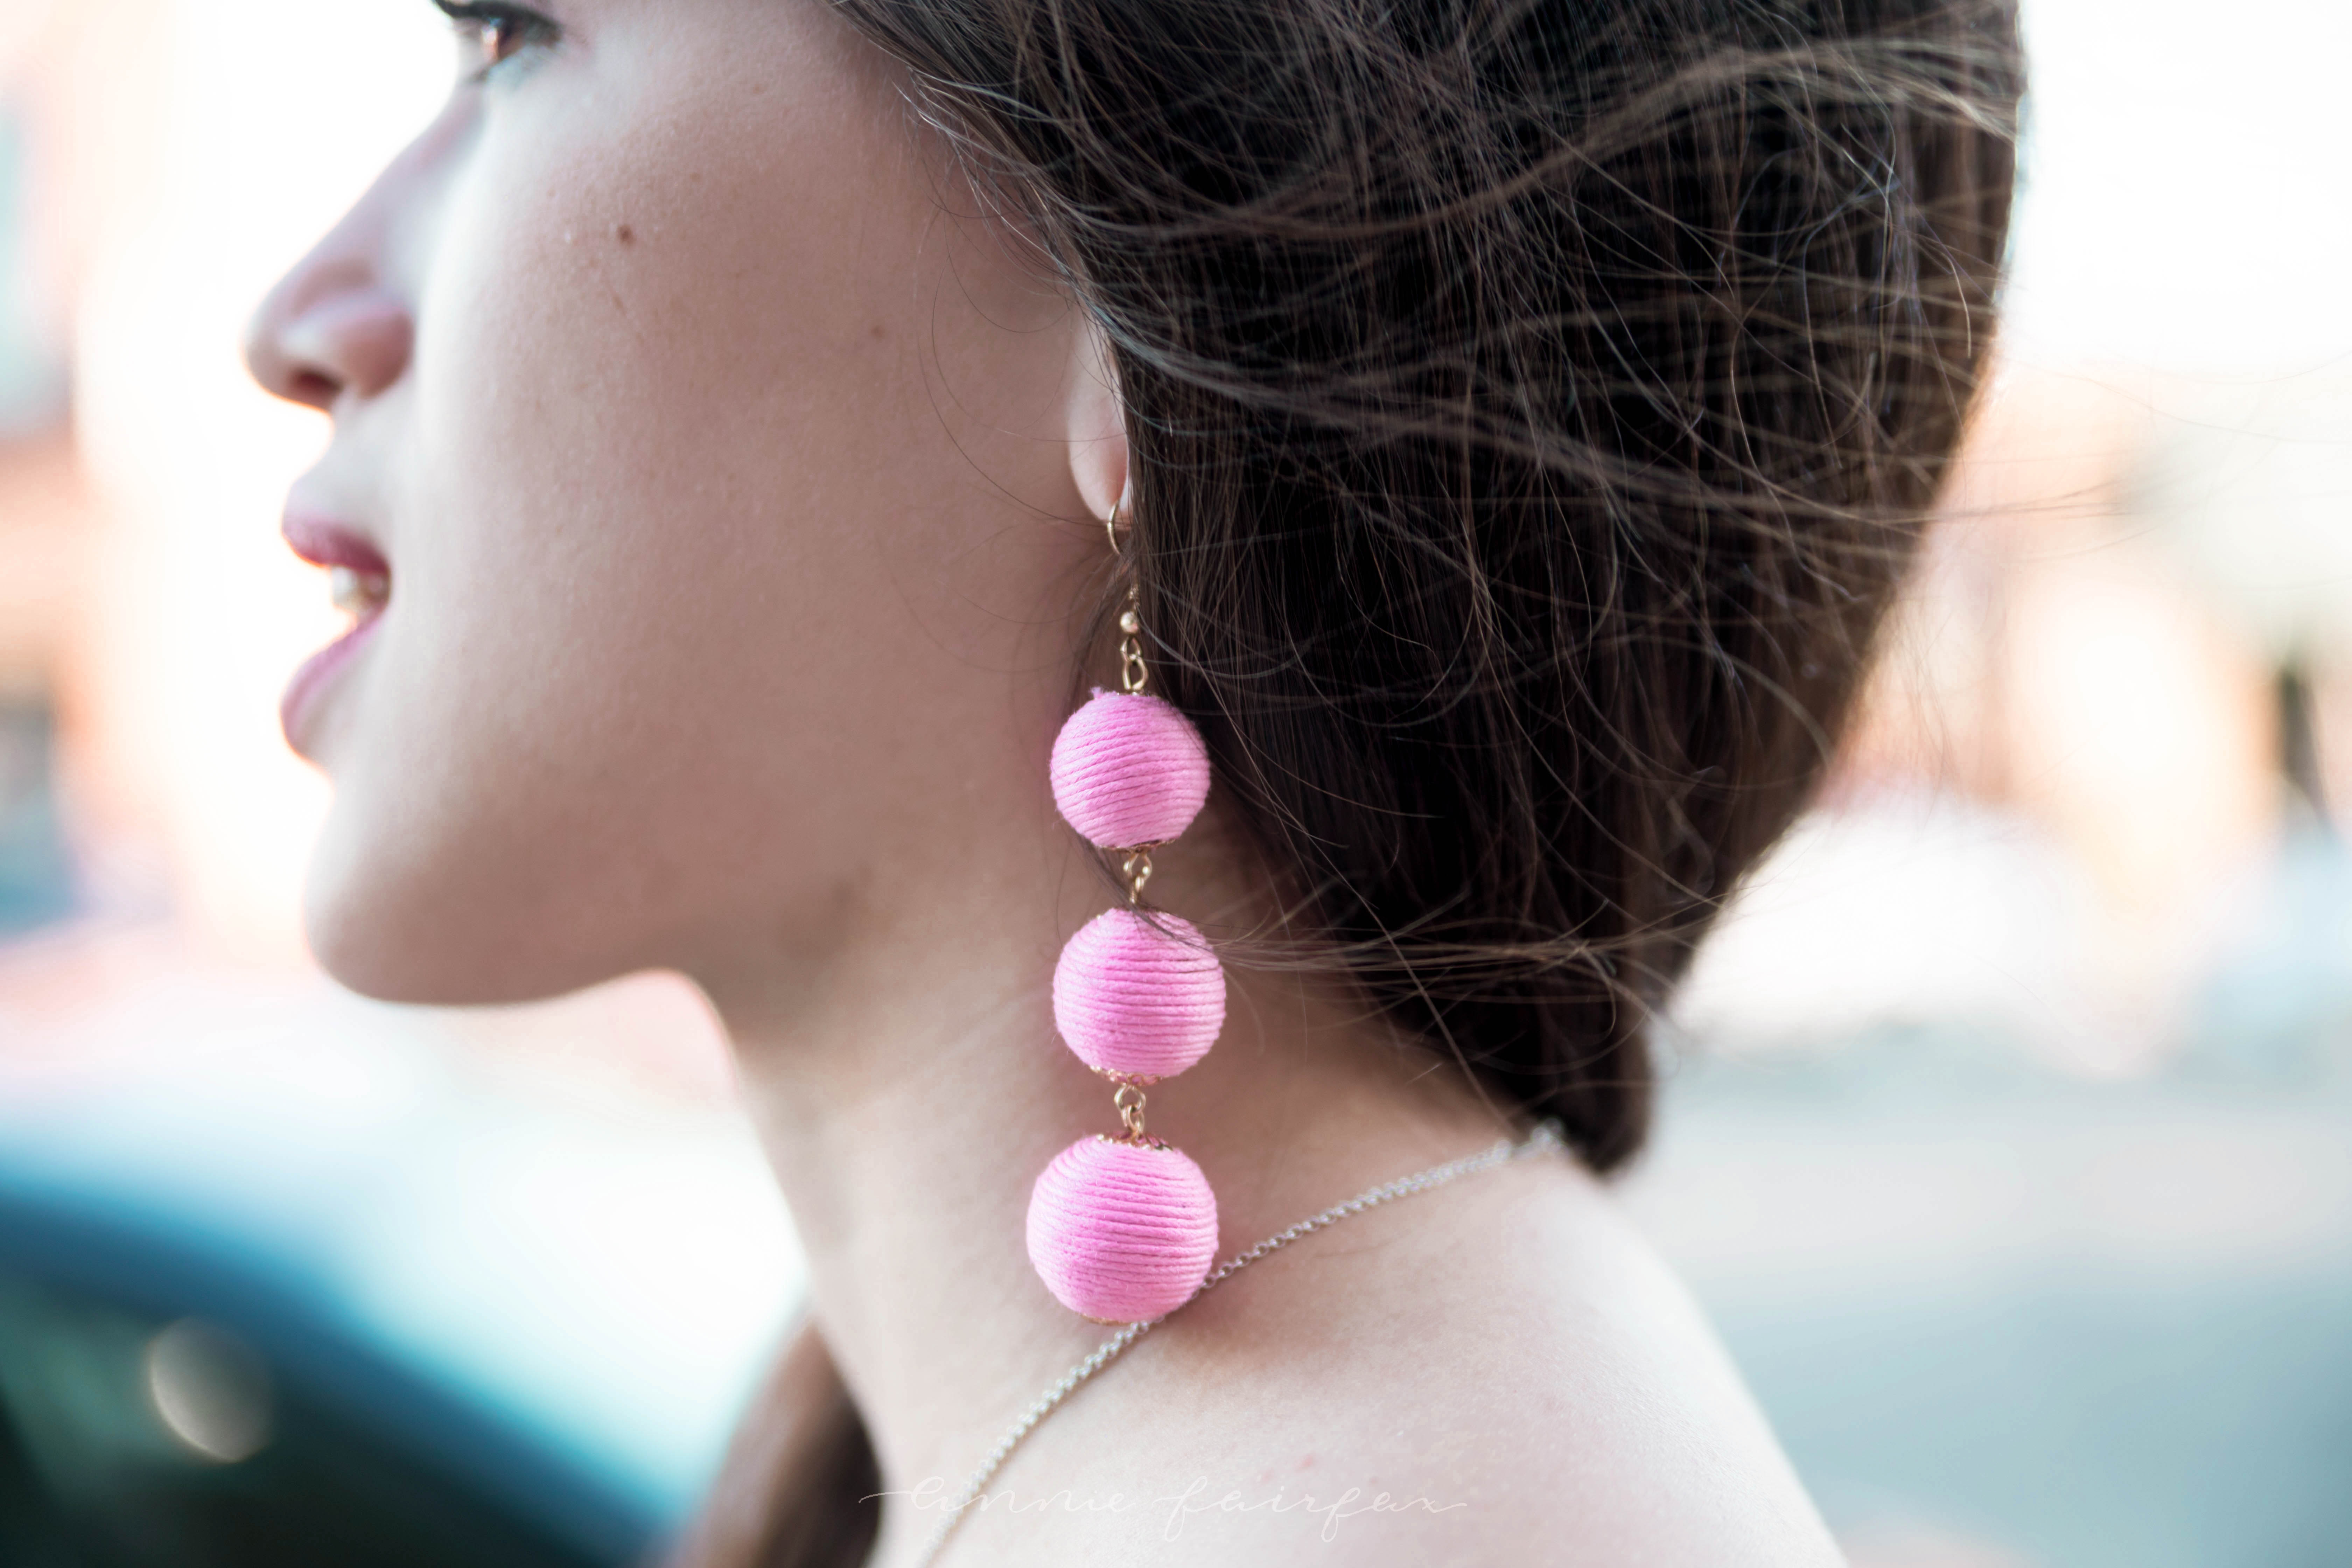 girl with brown hair detail shot light bright pink ball drop earrings with thread preppy accessories classic quirky jewelry profile view mod